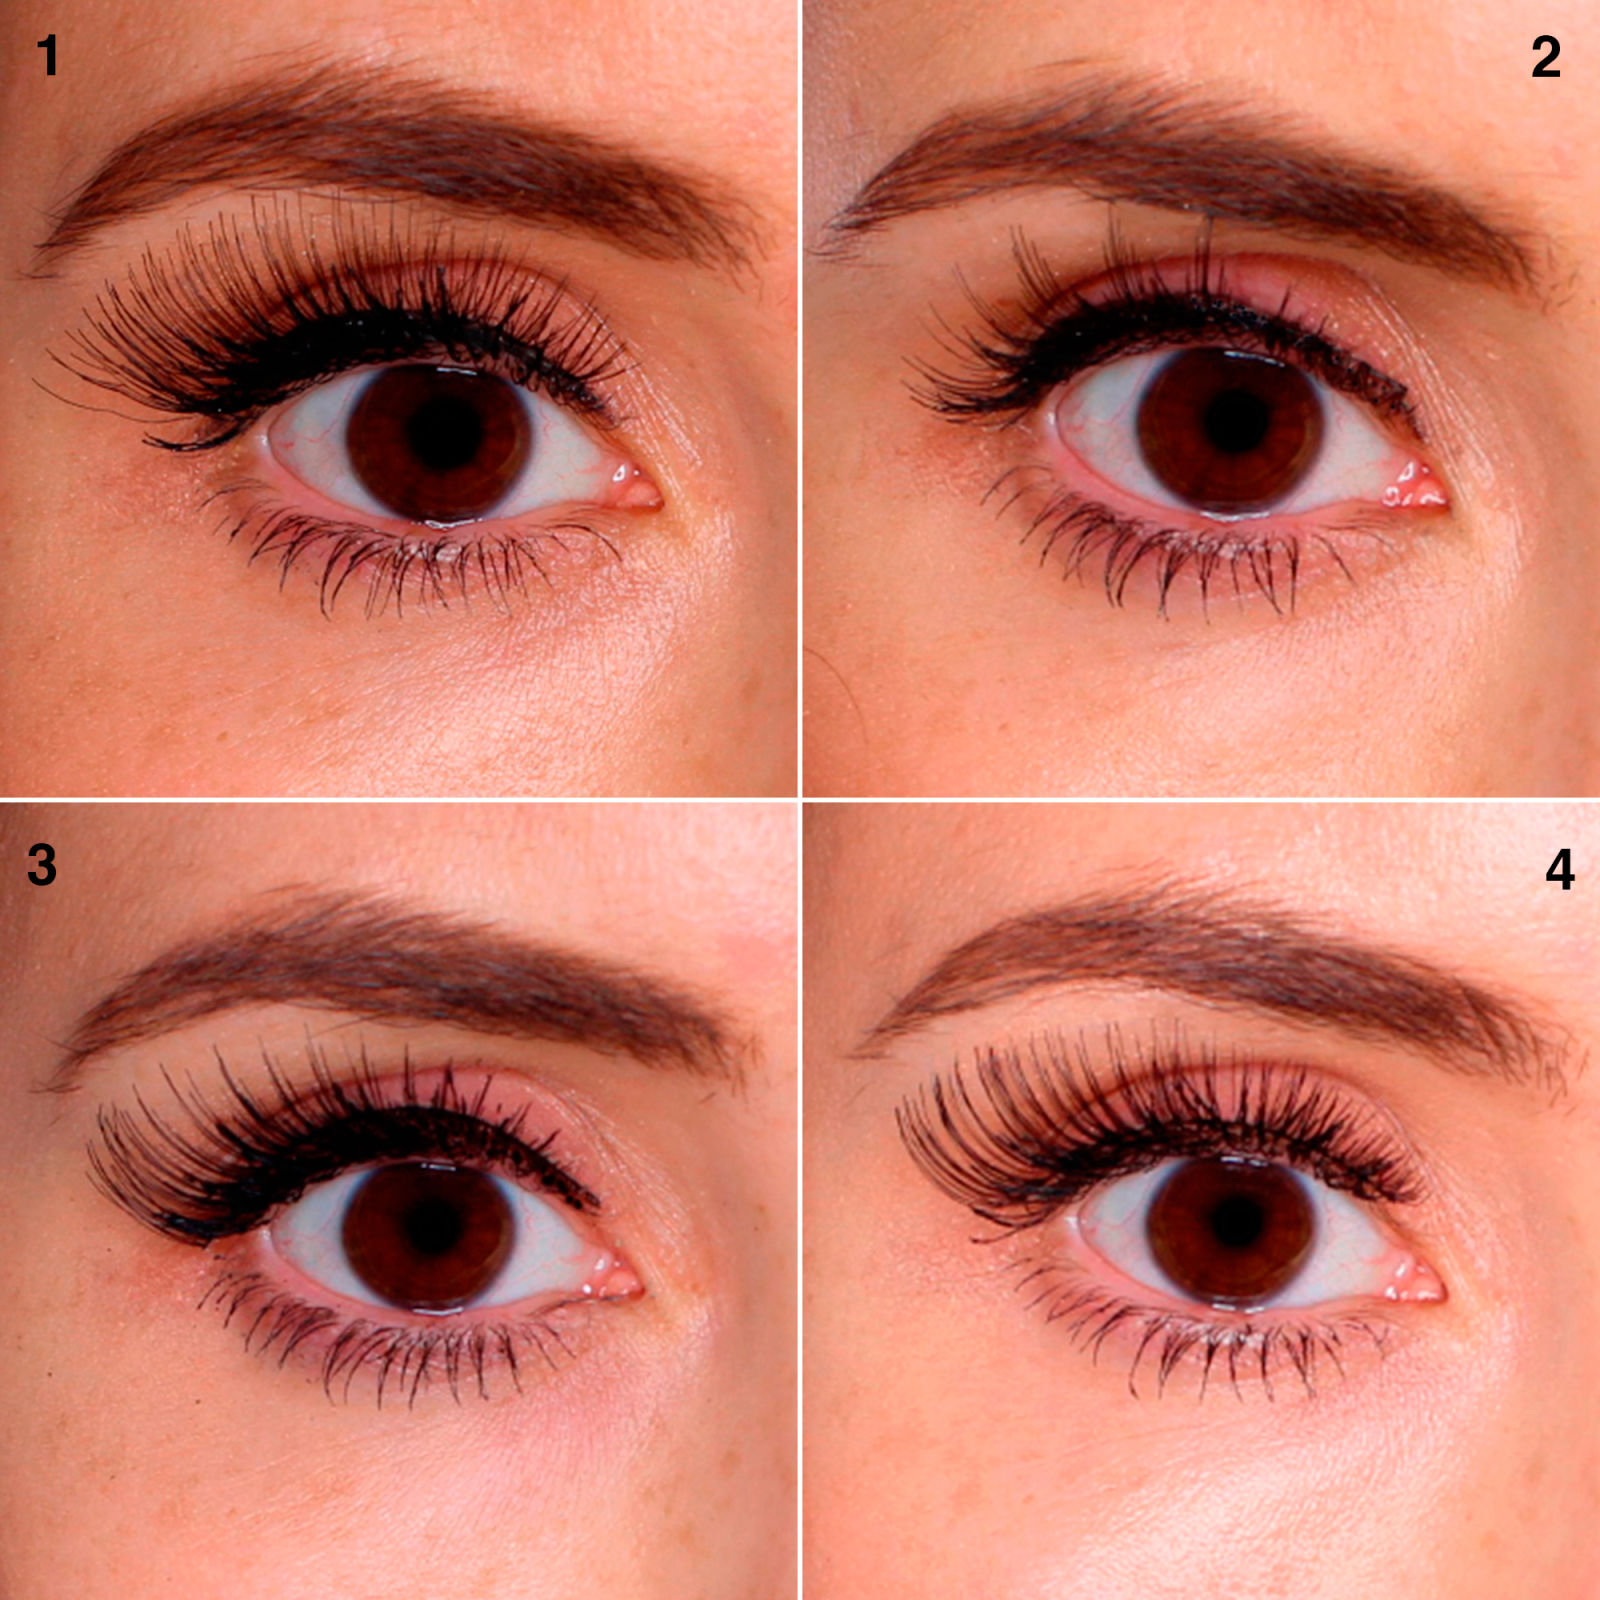 1449243633-syn-cos-1449071254-100-lashes-1